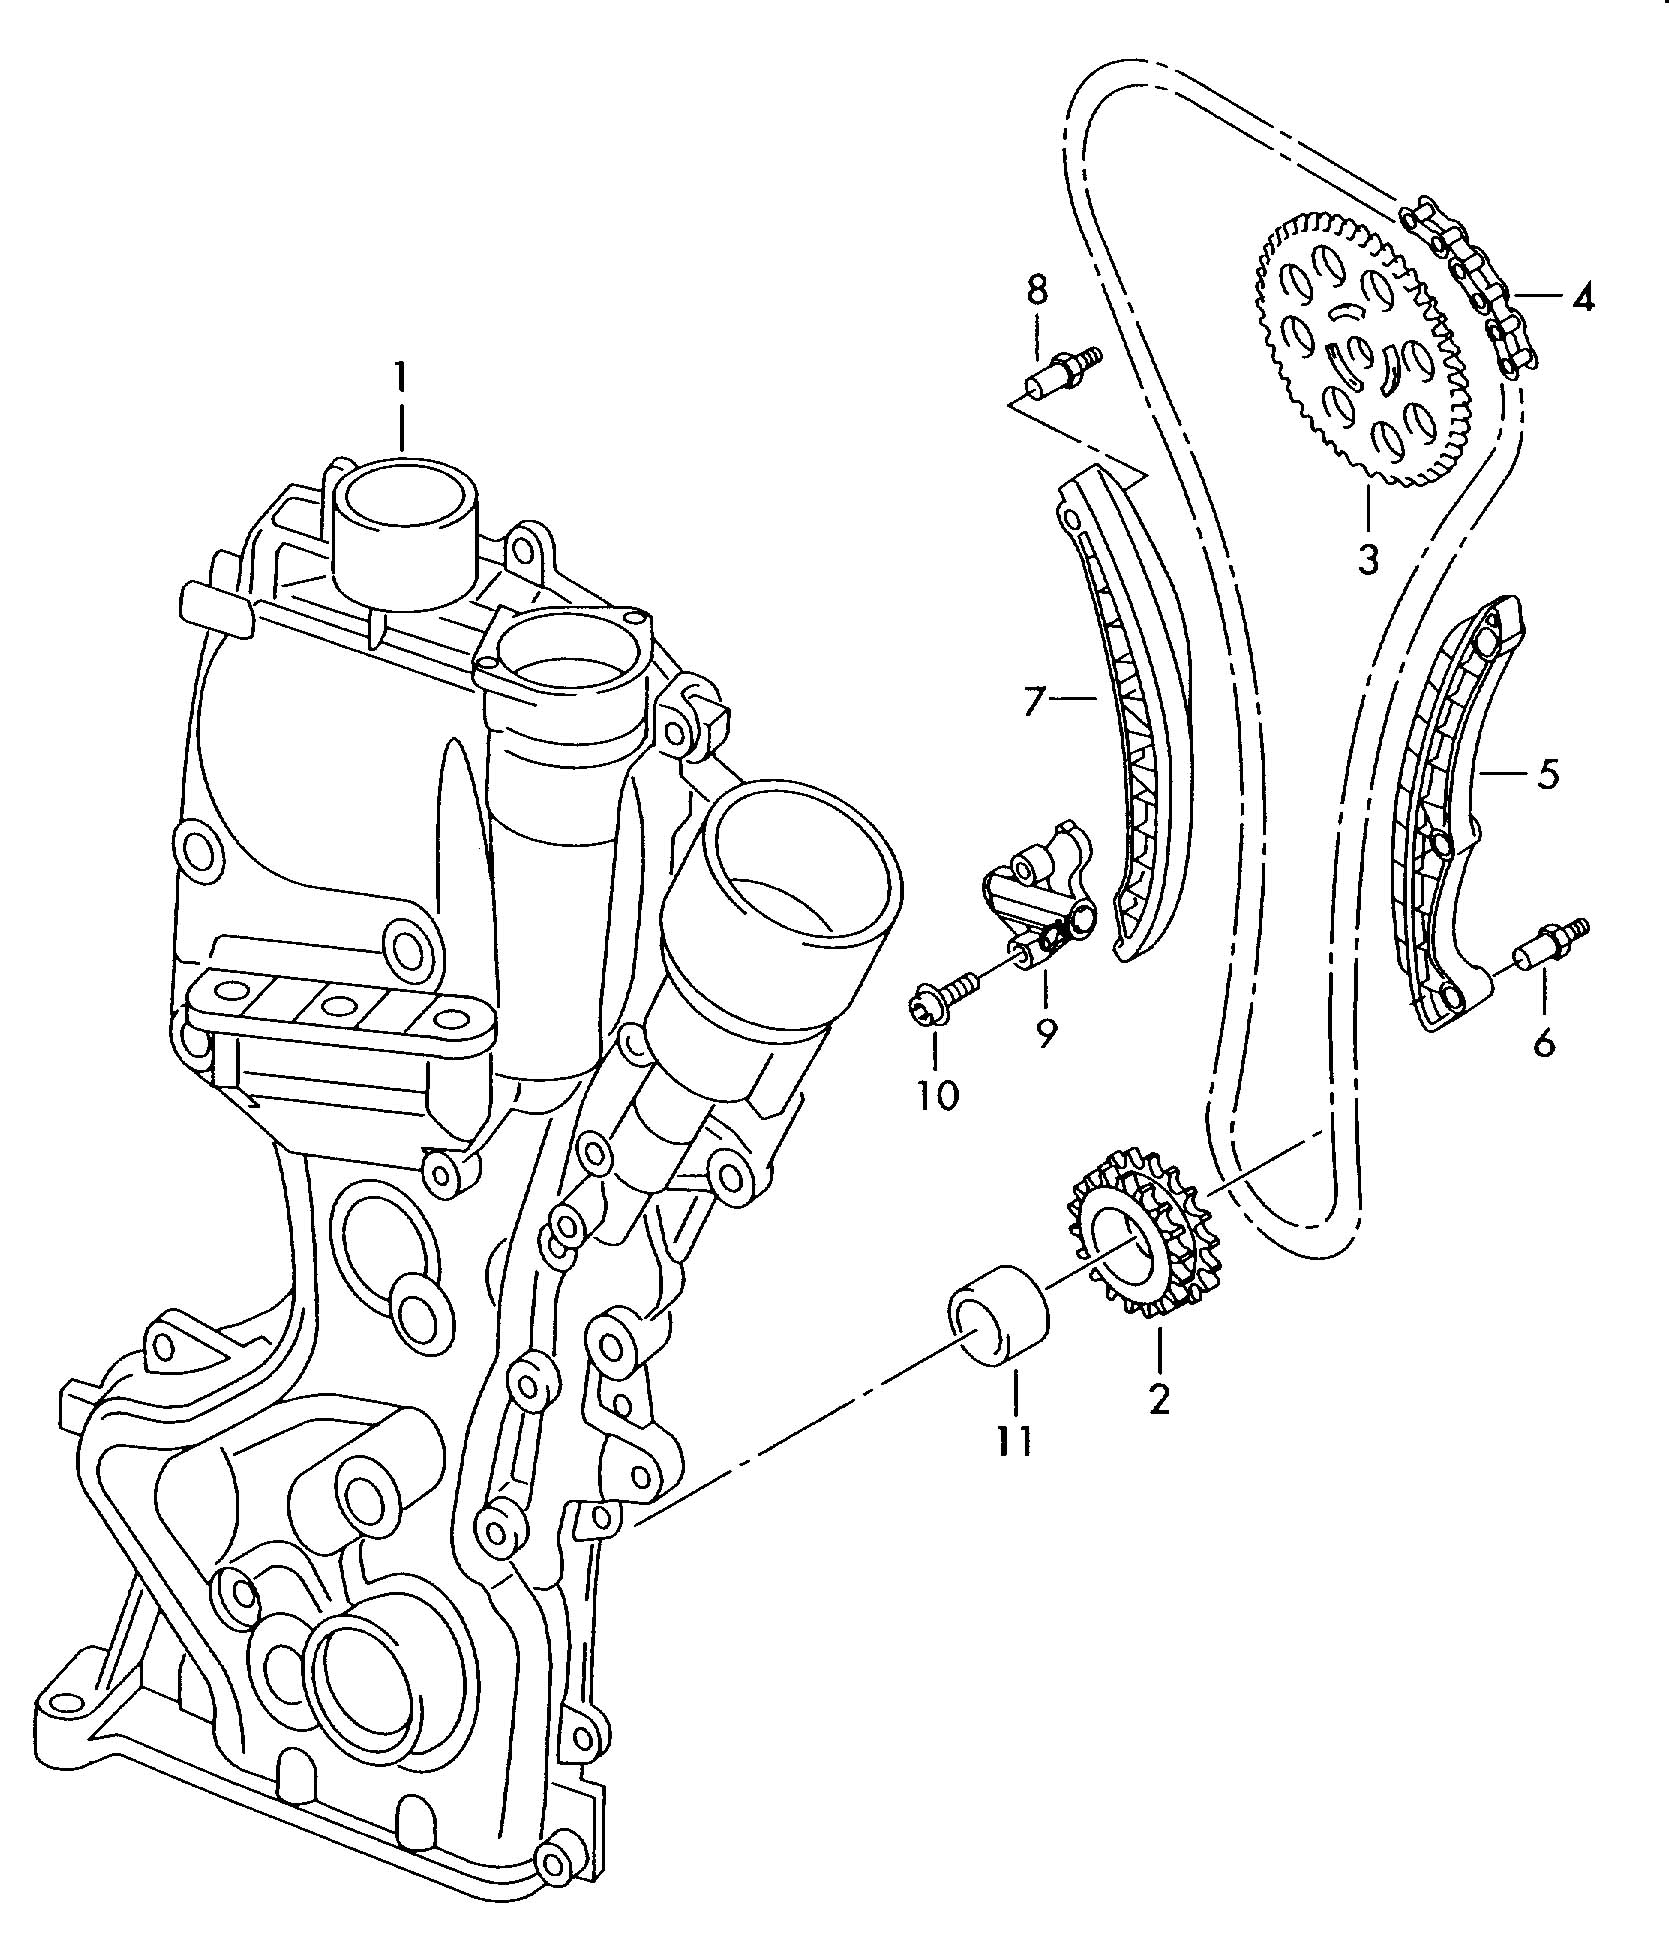 2009 Nissan Altima Qr25de Engine  partment Diagram moreover V Belt Diagram Buick V8 furthermore Ford 2 0 Timing Marks Car Pictures likewise 06H105243K in addition 5 4 Front Timing Marks. on 2010 vw cc timing chain